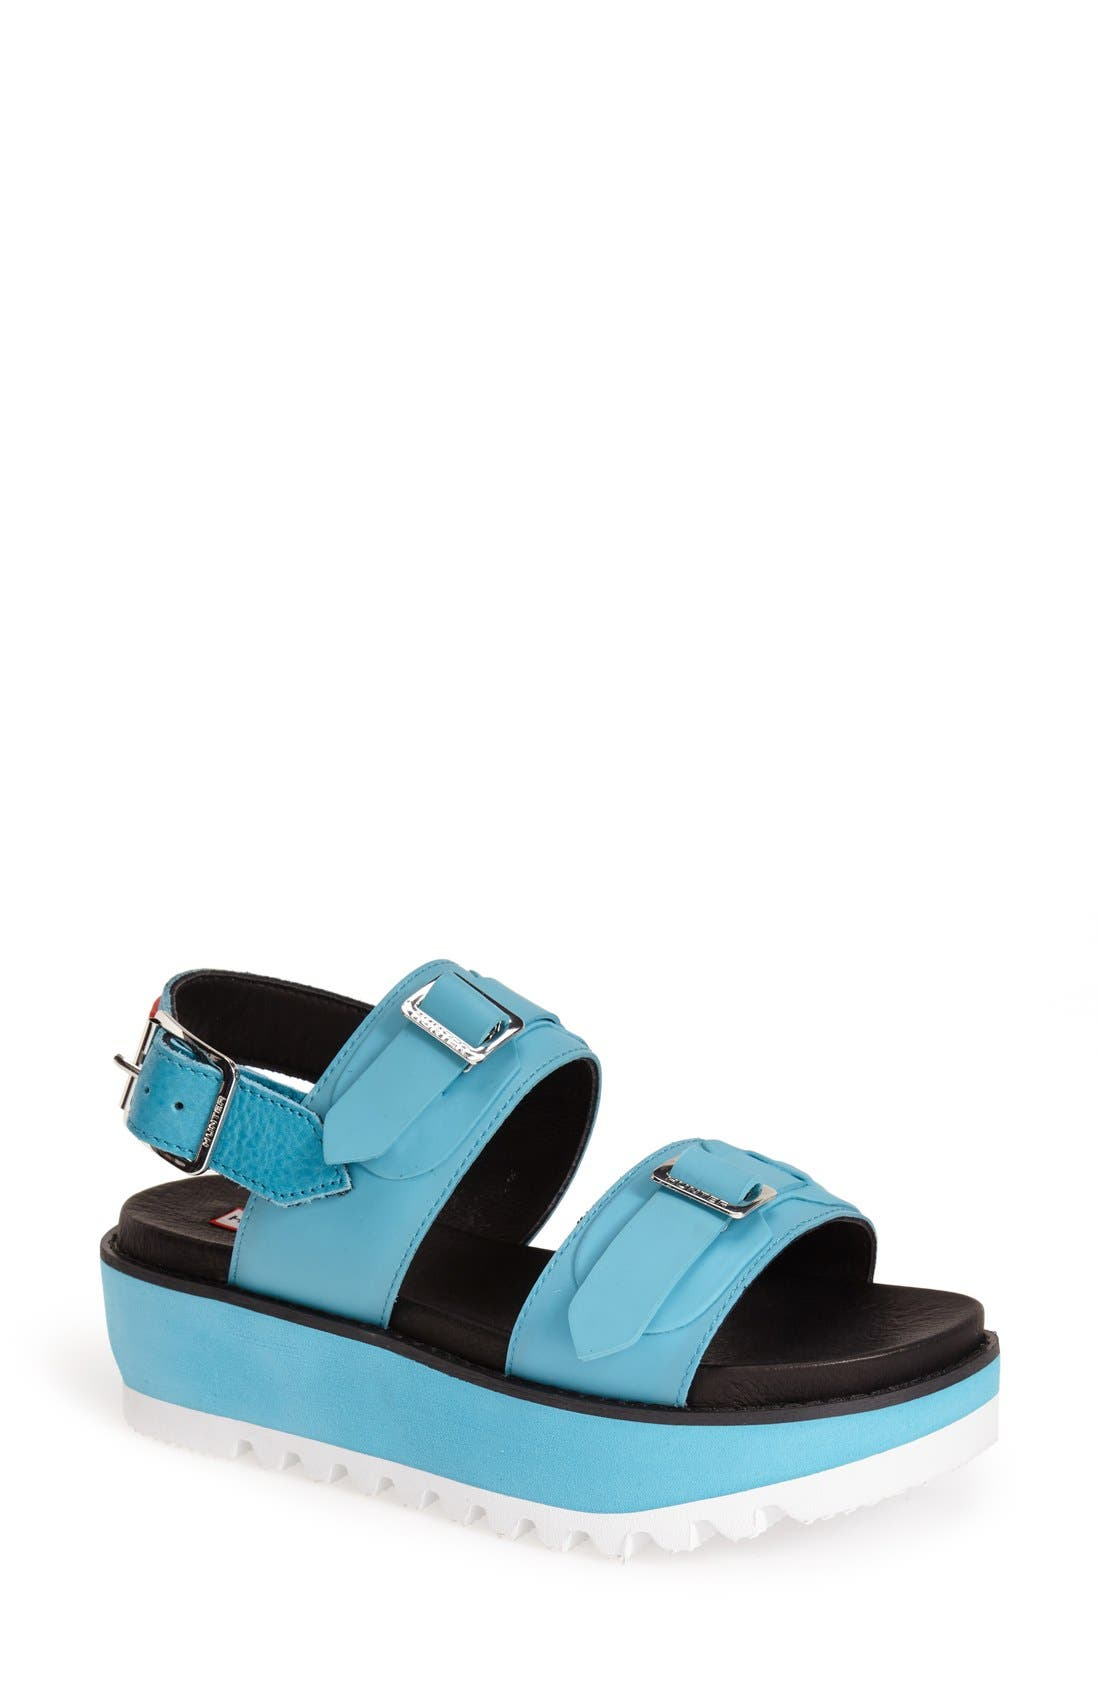 Alternate Image 1 Selected - Hunter Double Buckle Mid Flatform Sandal (Women)